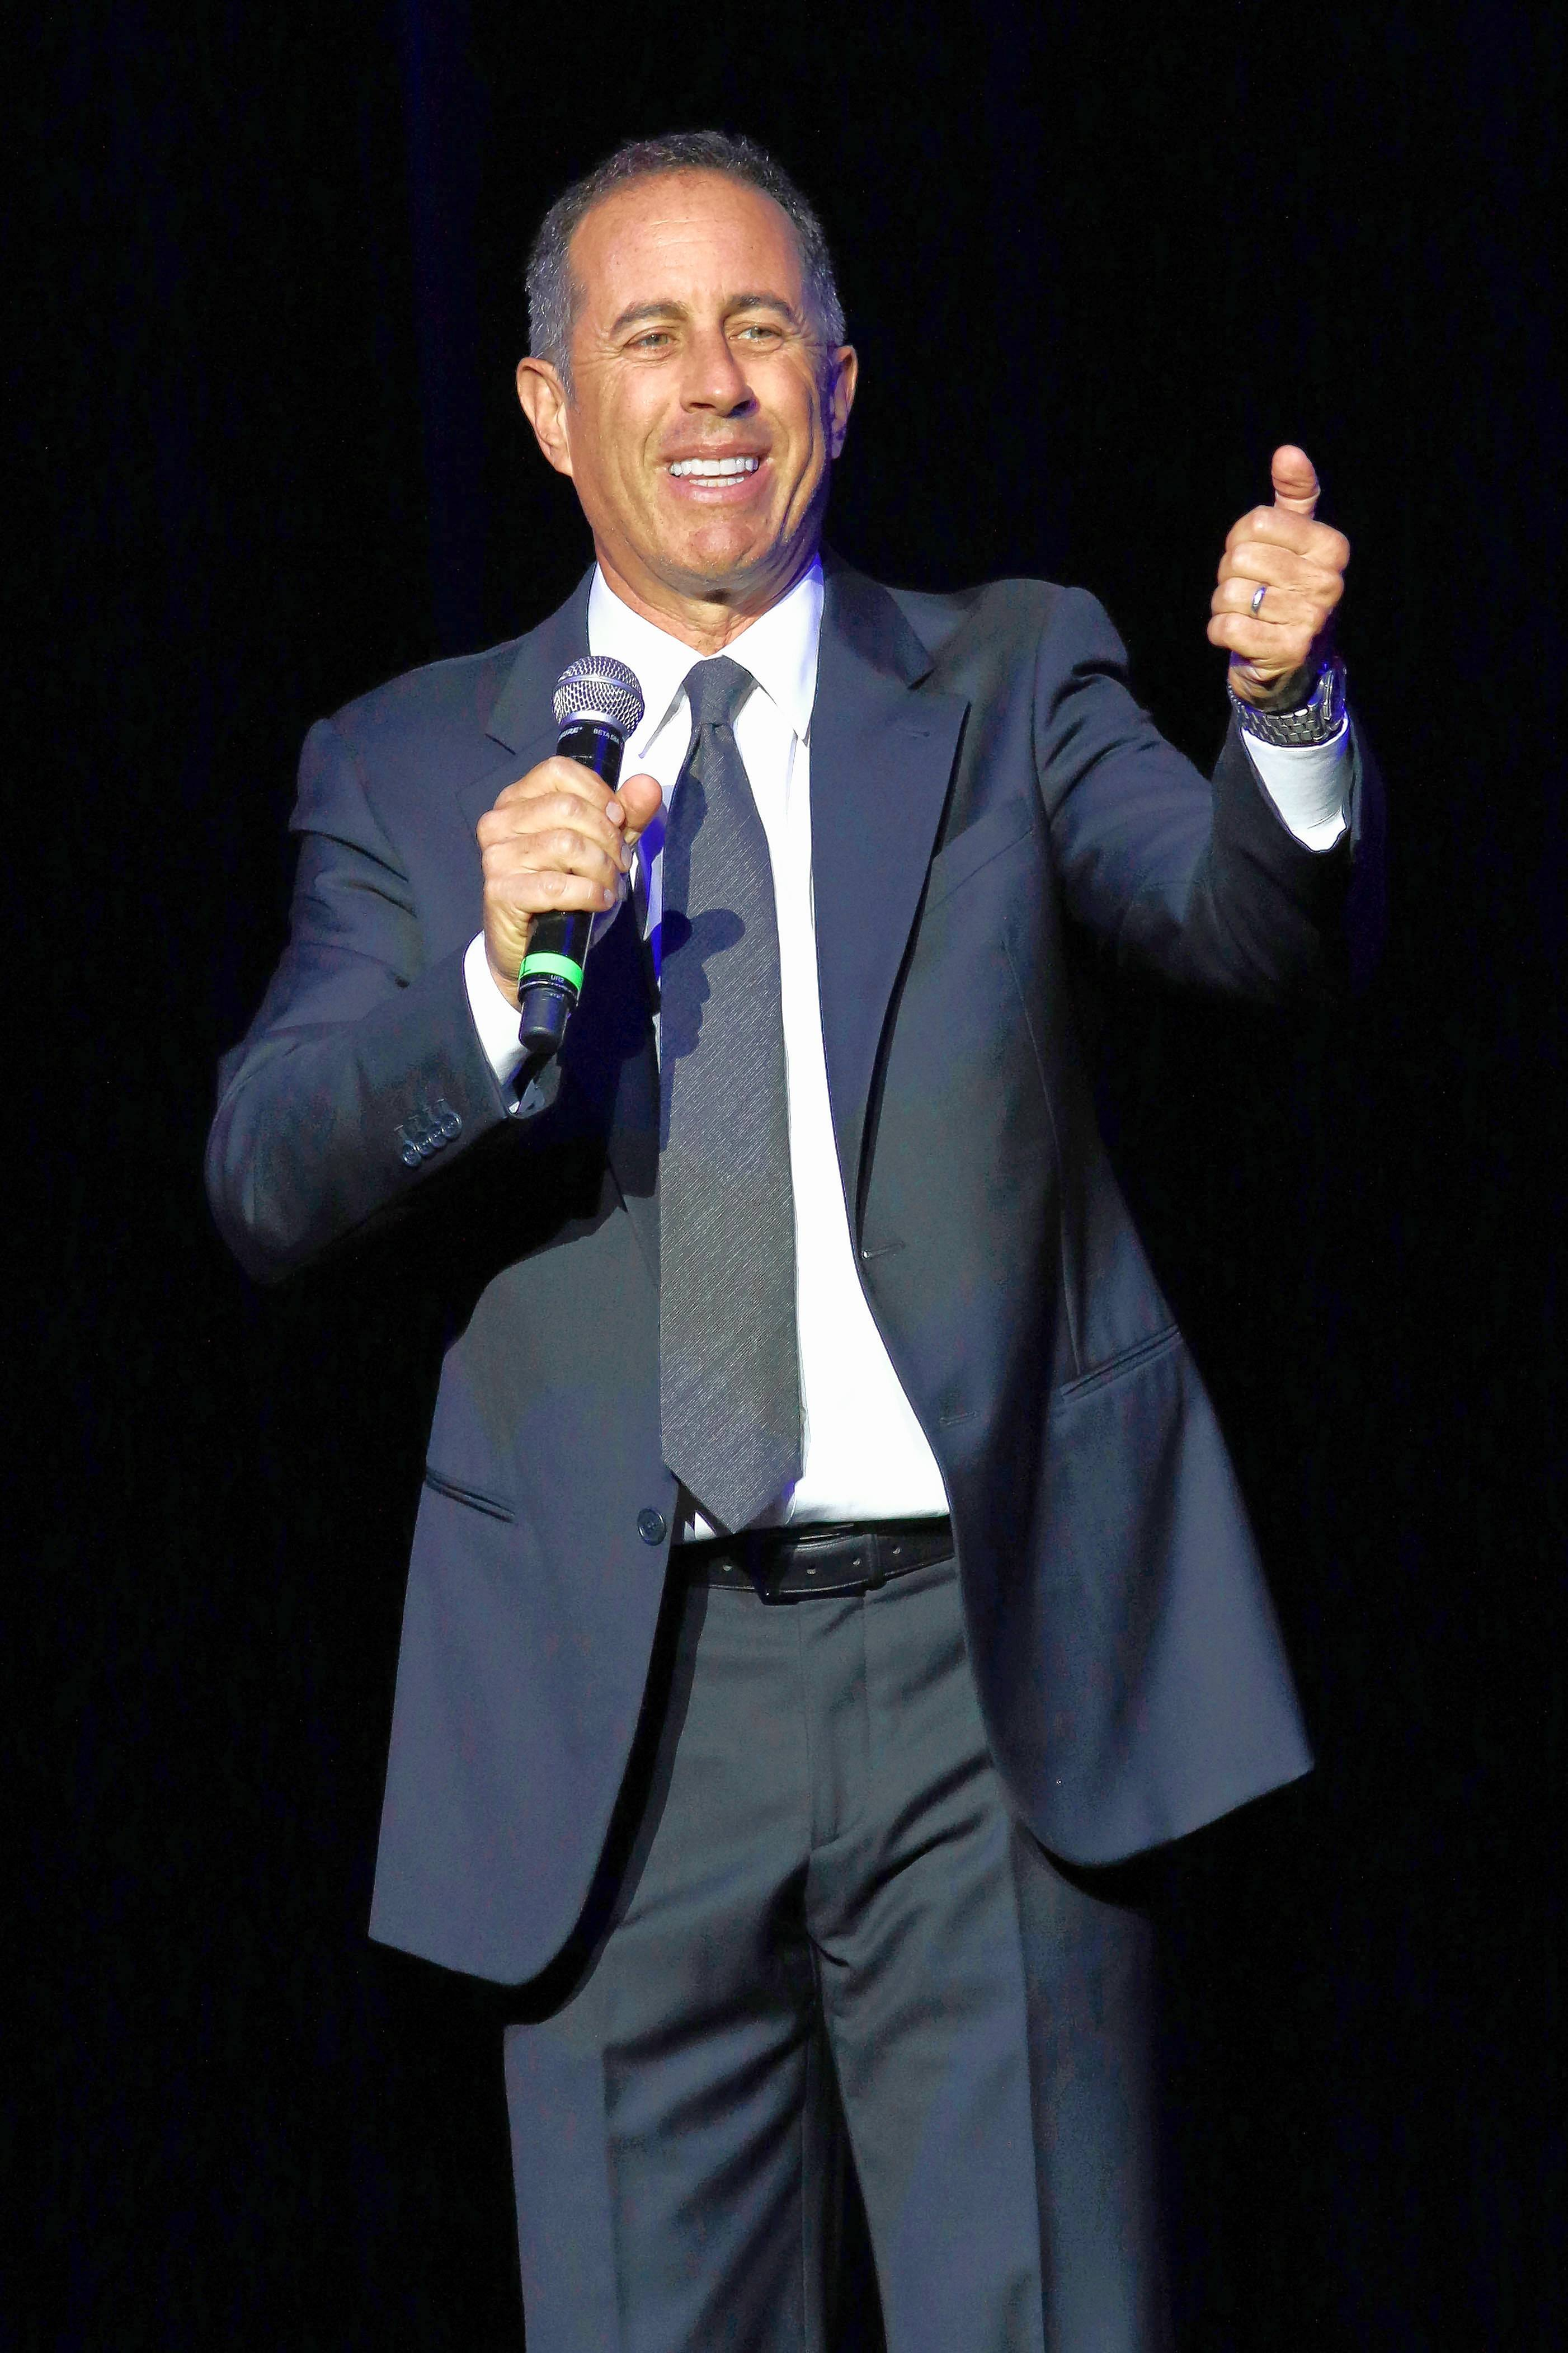 Jerry Seinfeld performs four shows at the Chicago Theatre on Thursday and Friday, Dec. 8 and 9.